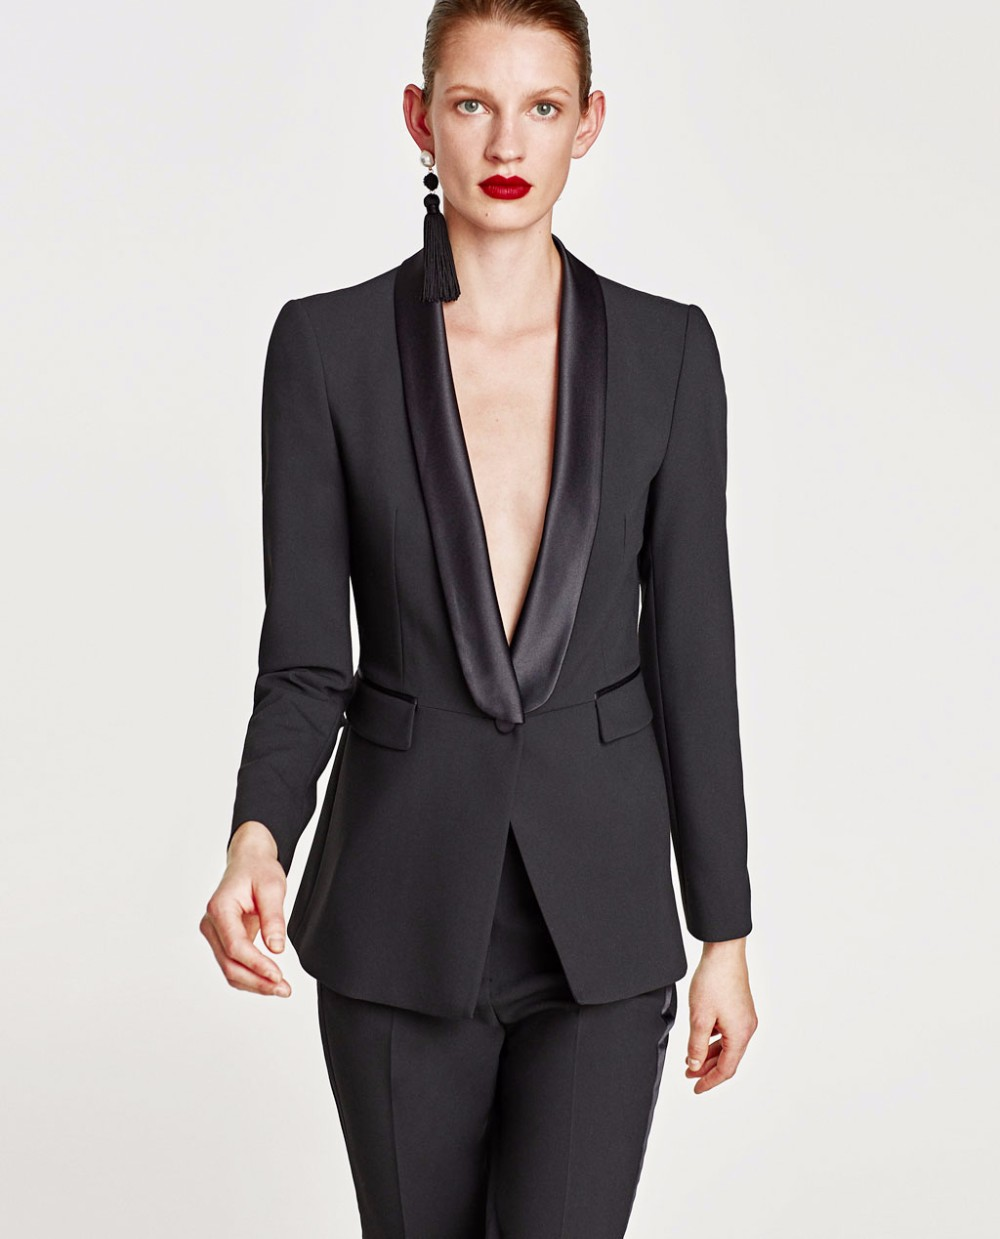 2018 Trending Products Fashion Fancy Ladies Black Slim Fit Office